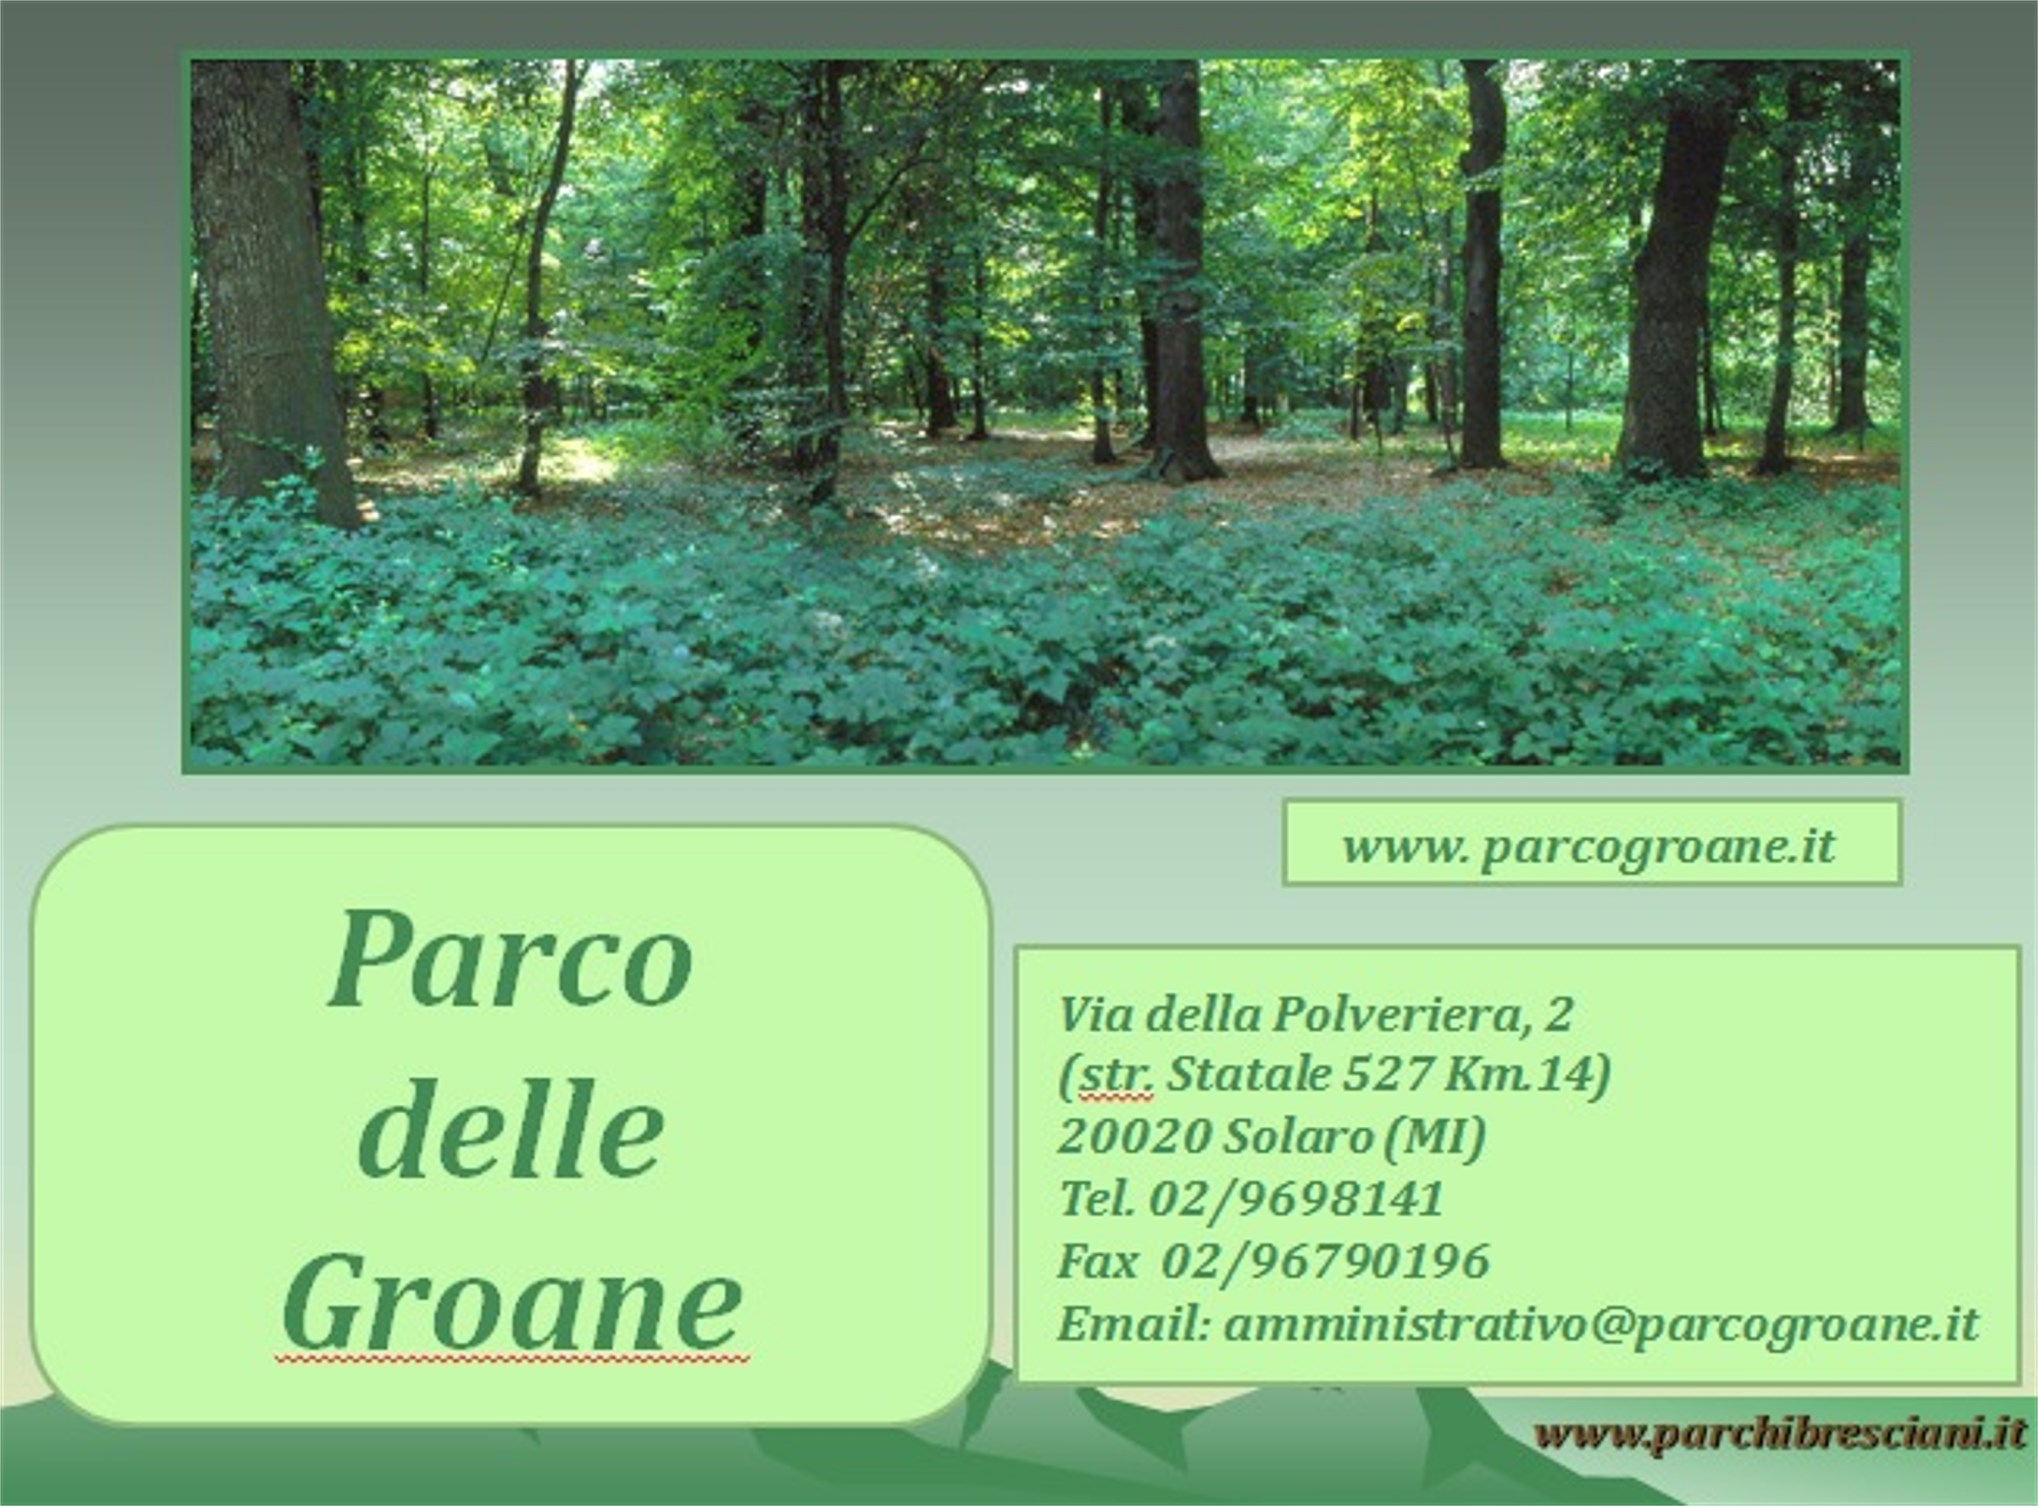 parco-groane